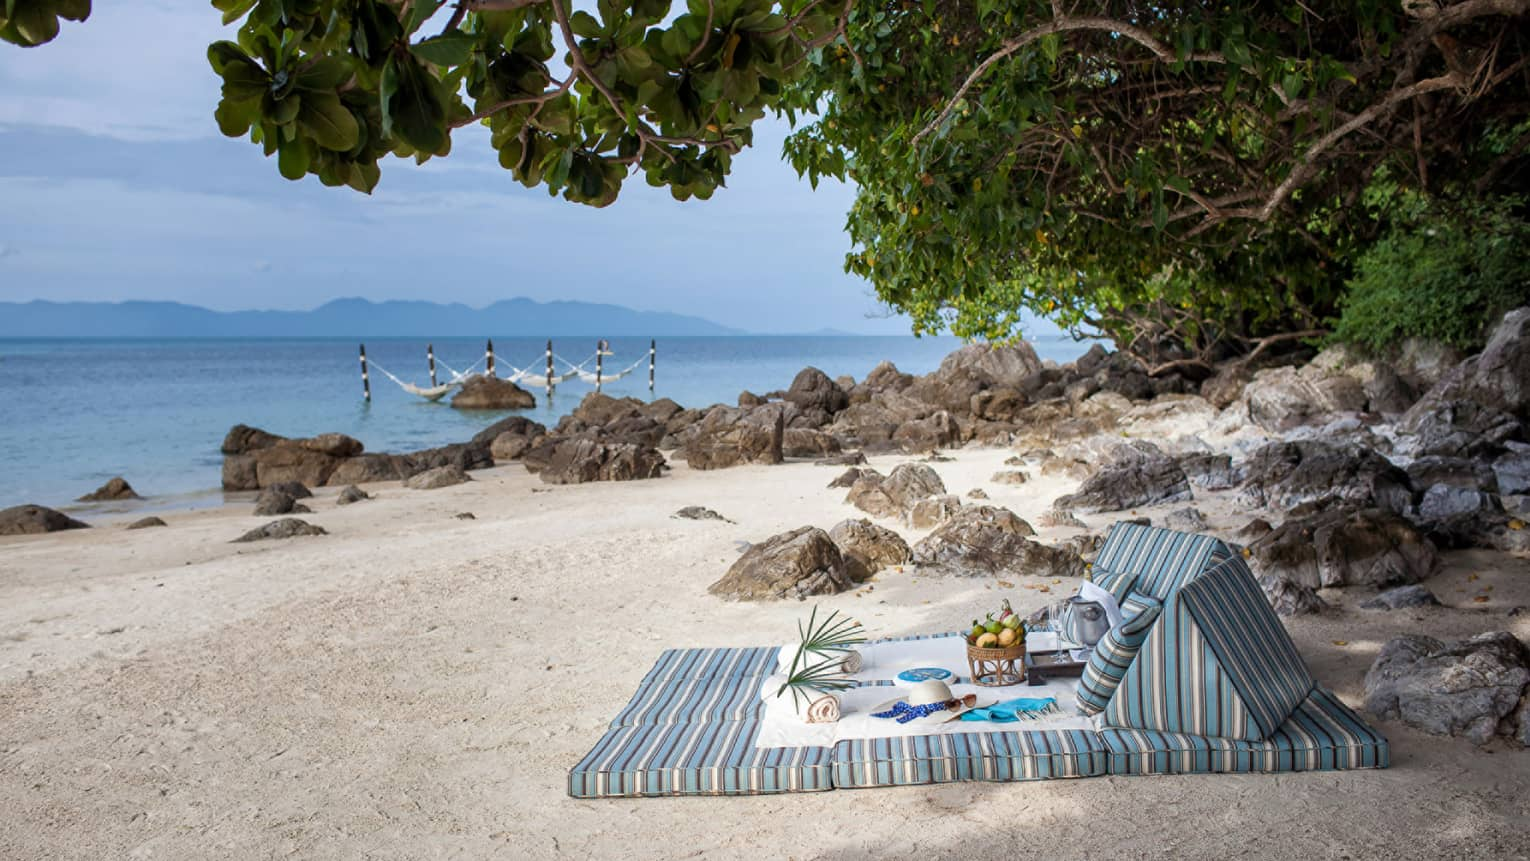 Striped cushions on white sand beach under tree with hat, fresh fruit, towels